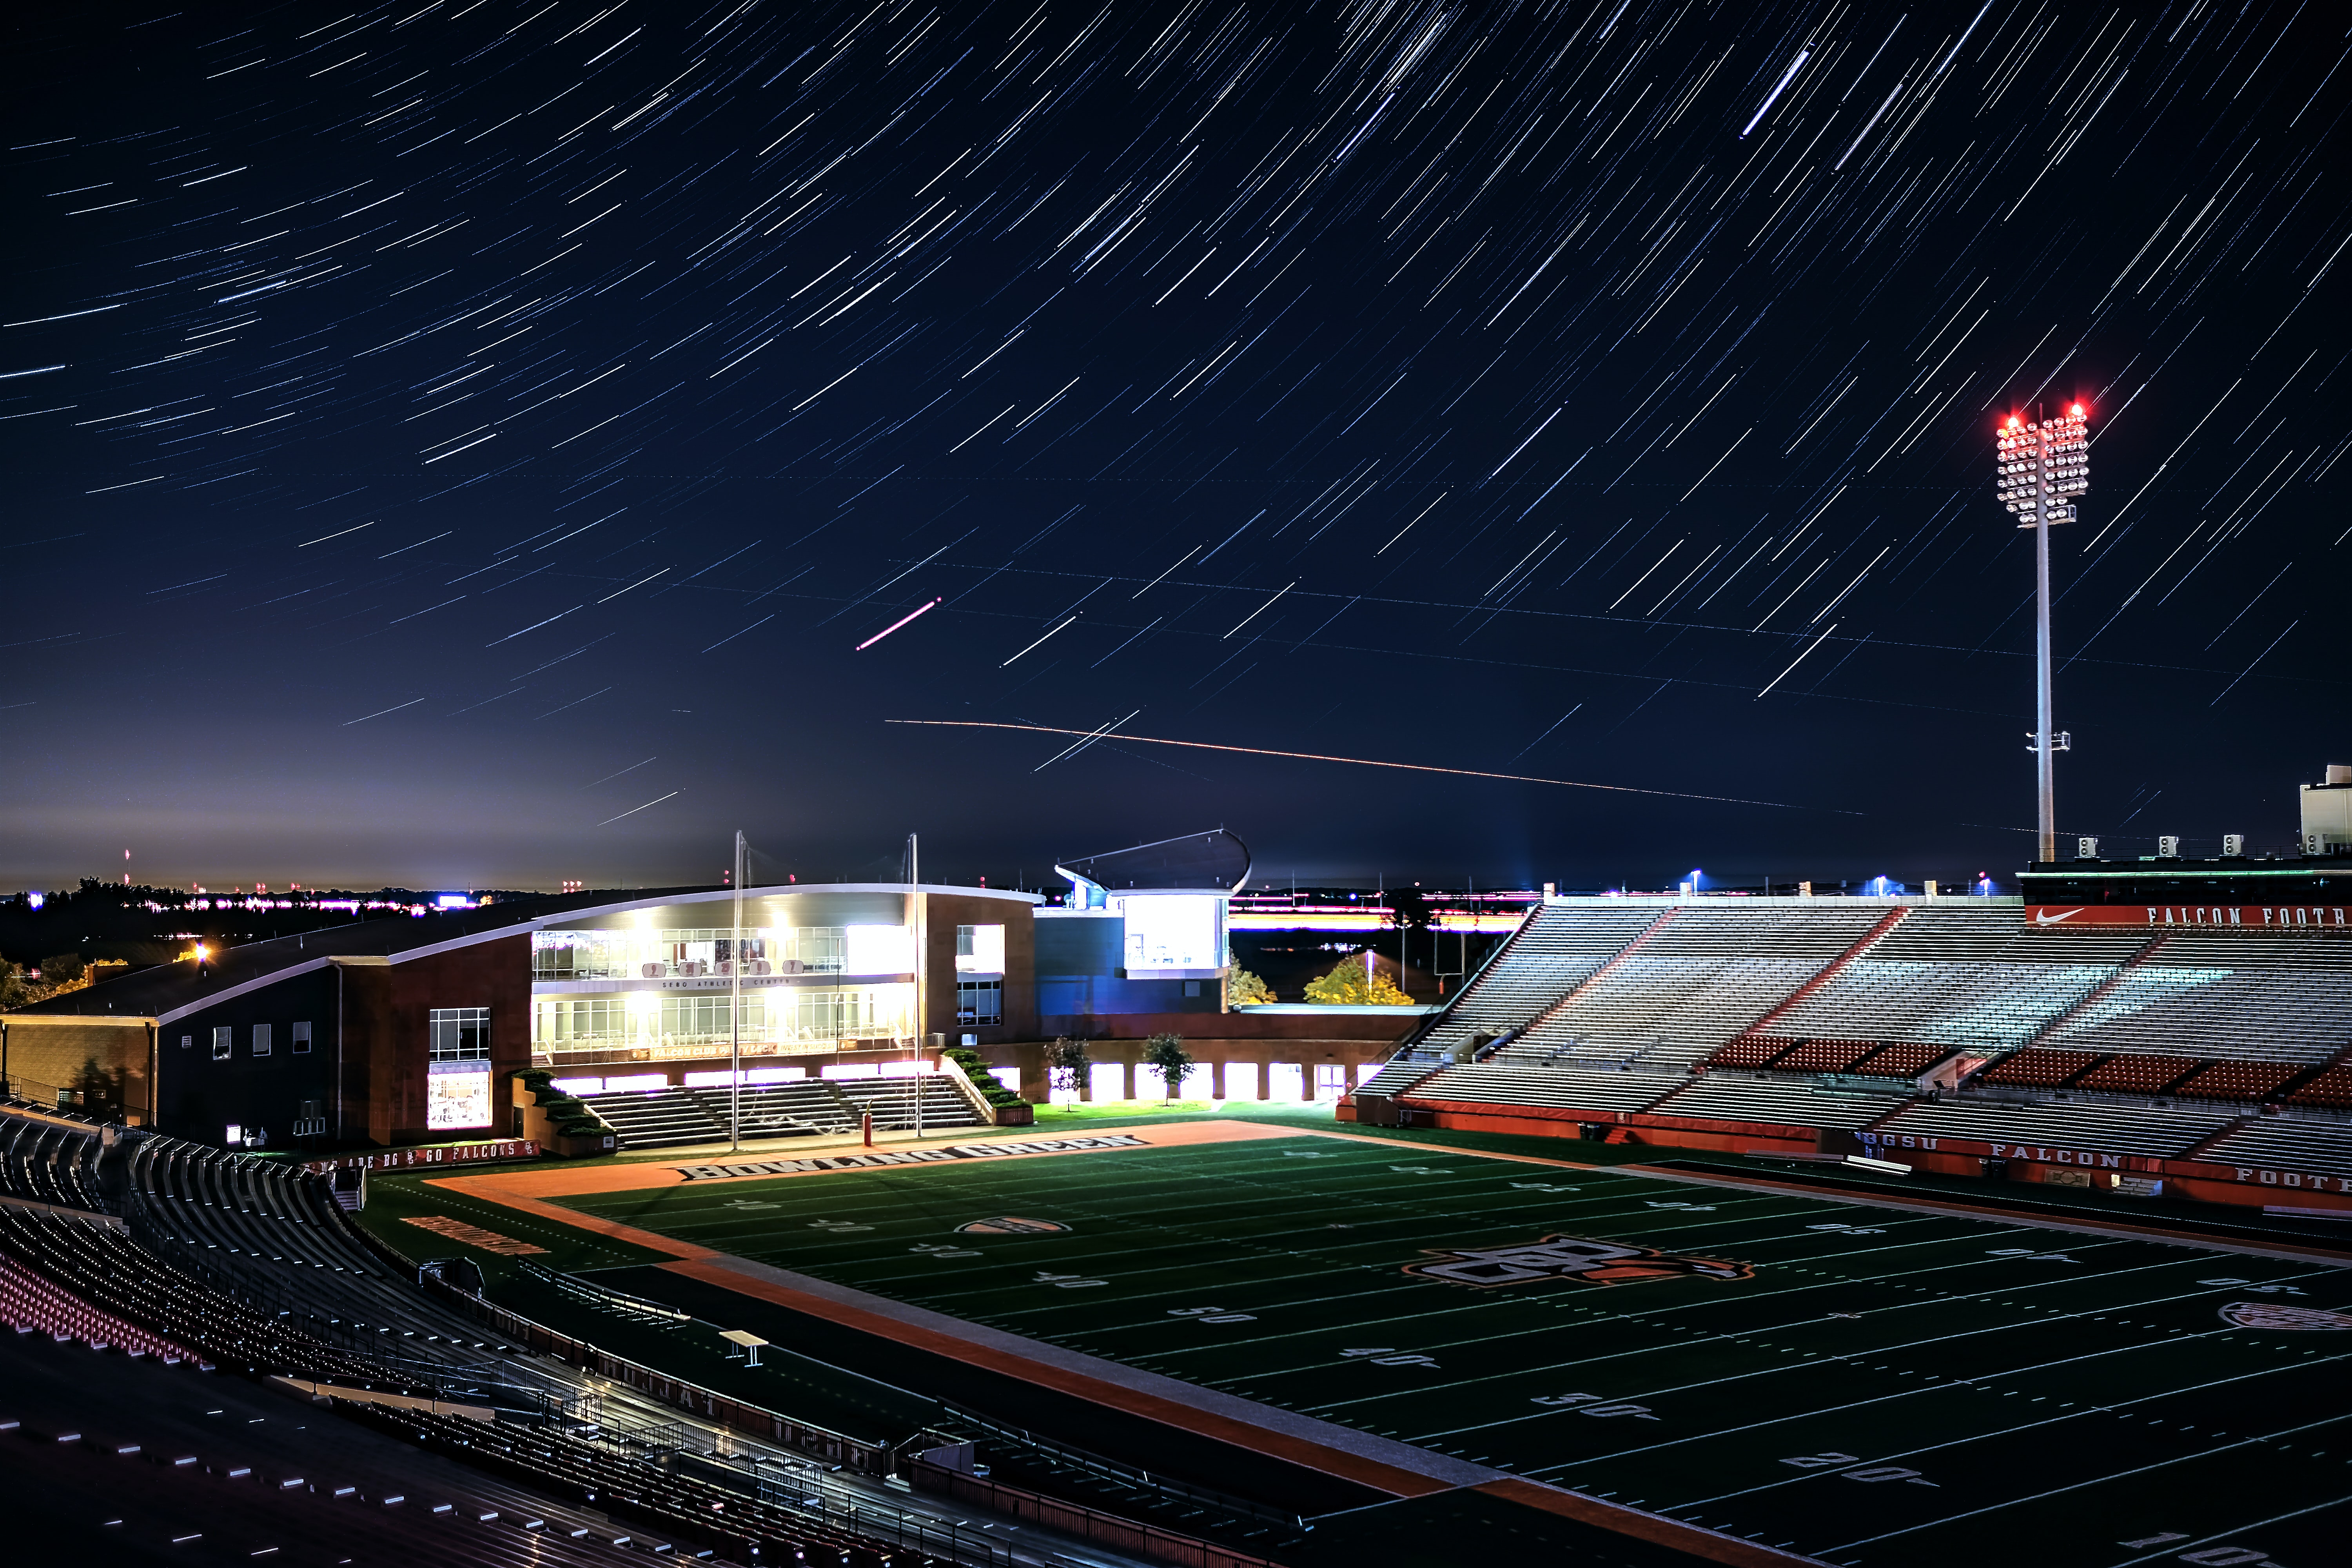 time lapse photography of football field